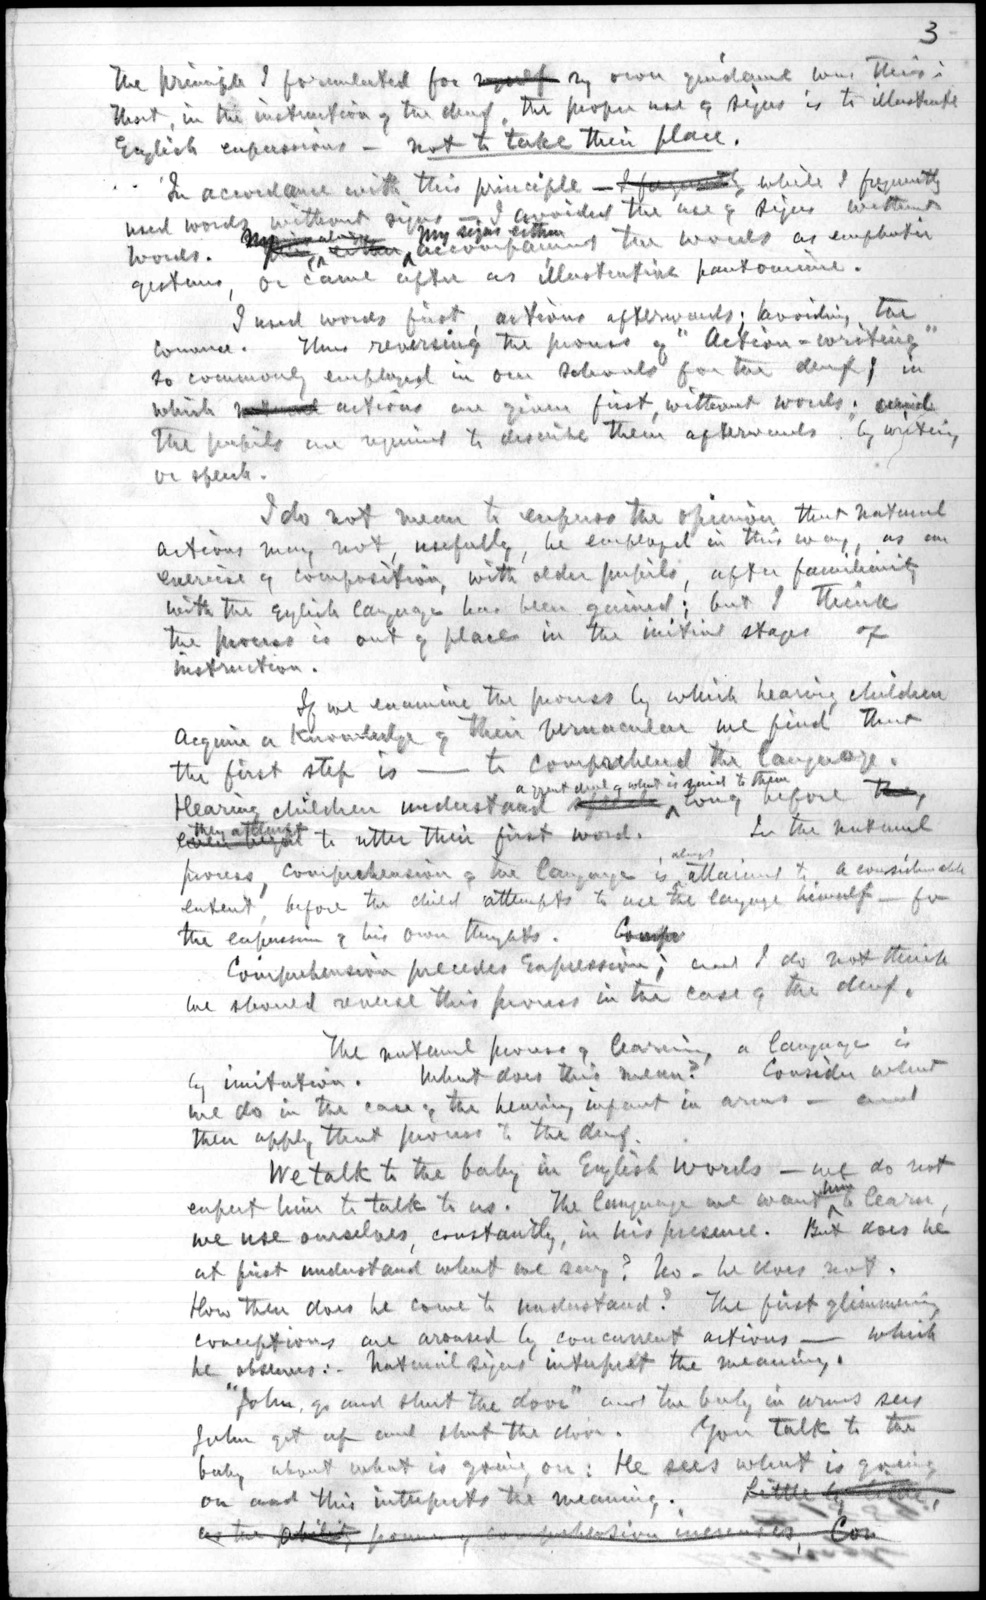 Notes by Alexander Graham Bell, undated